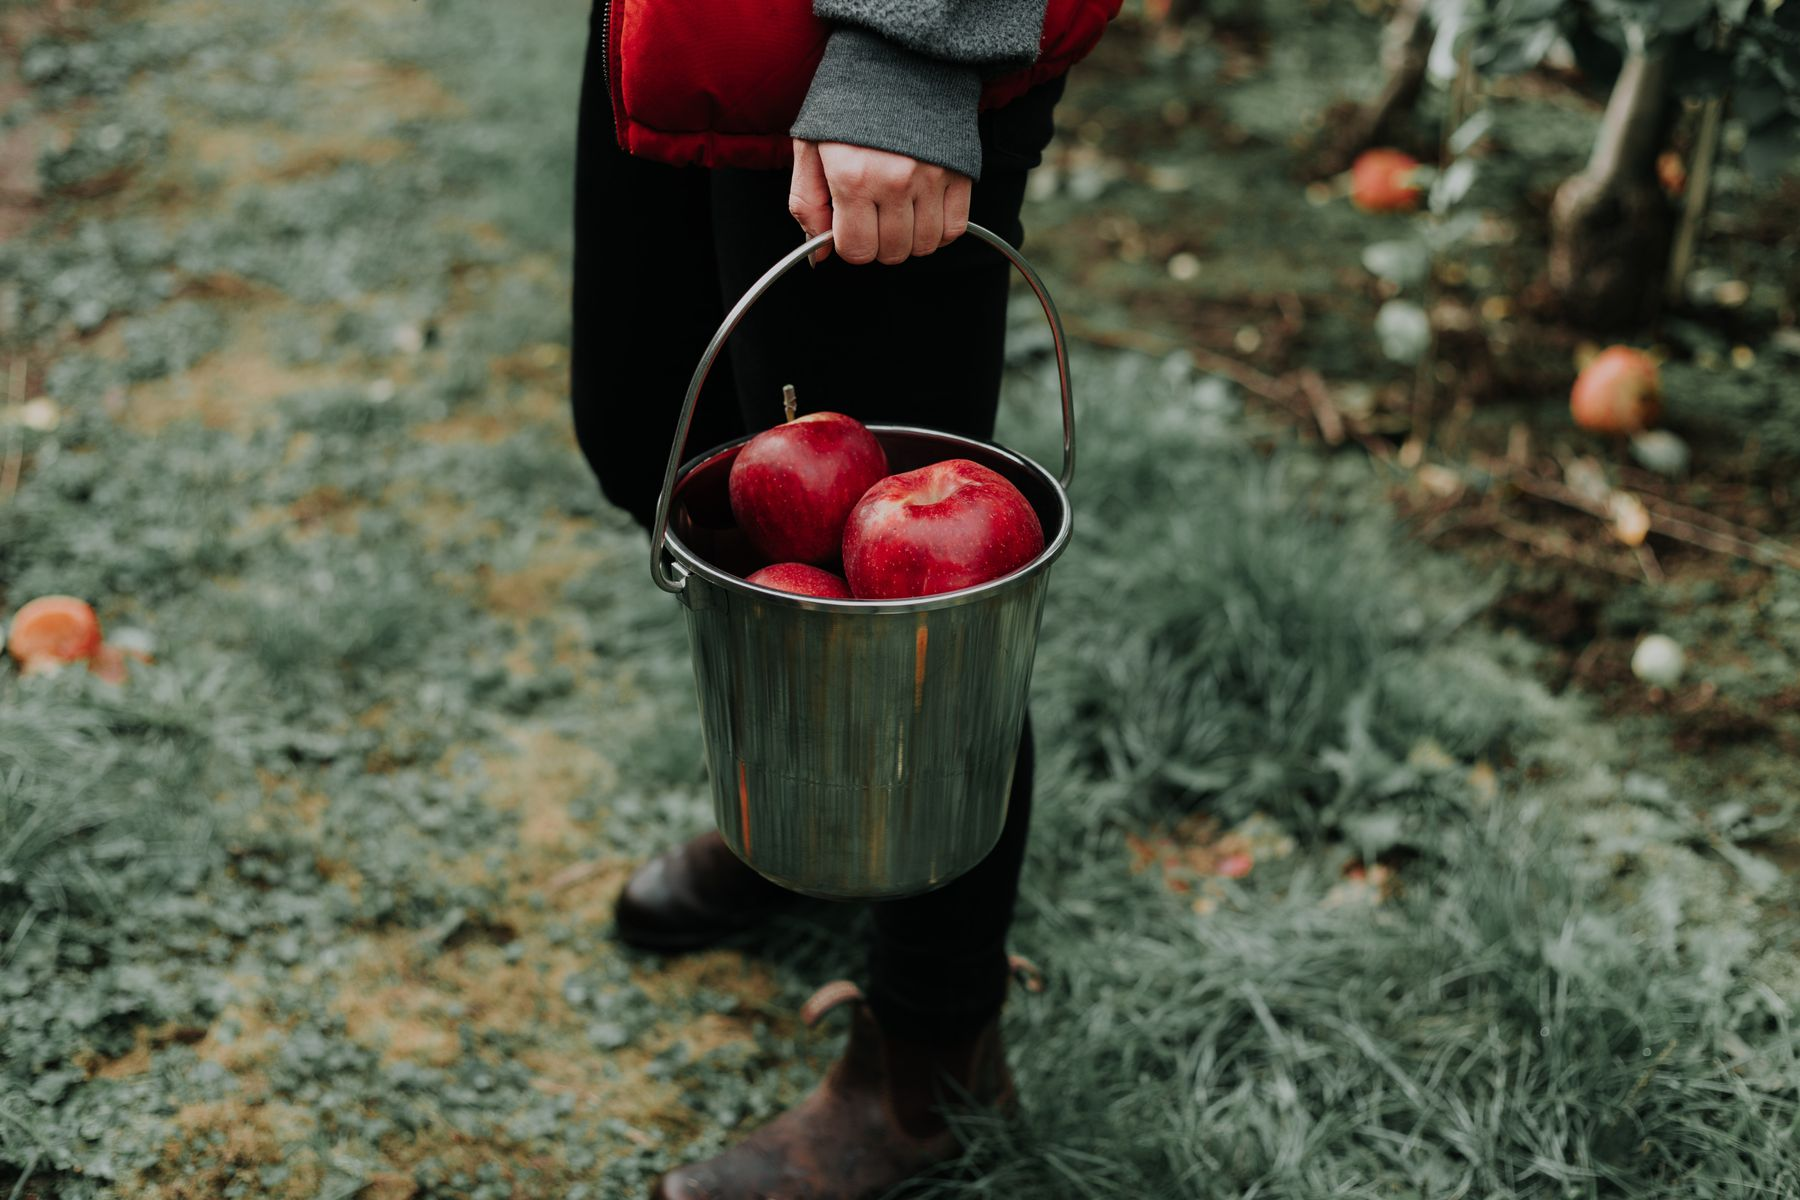 person holding a pail full of red apples